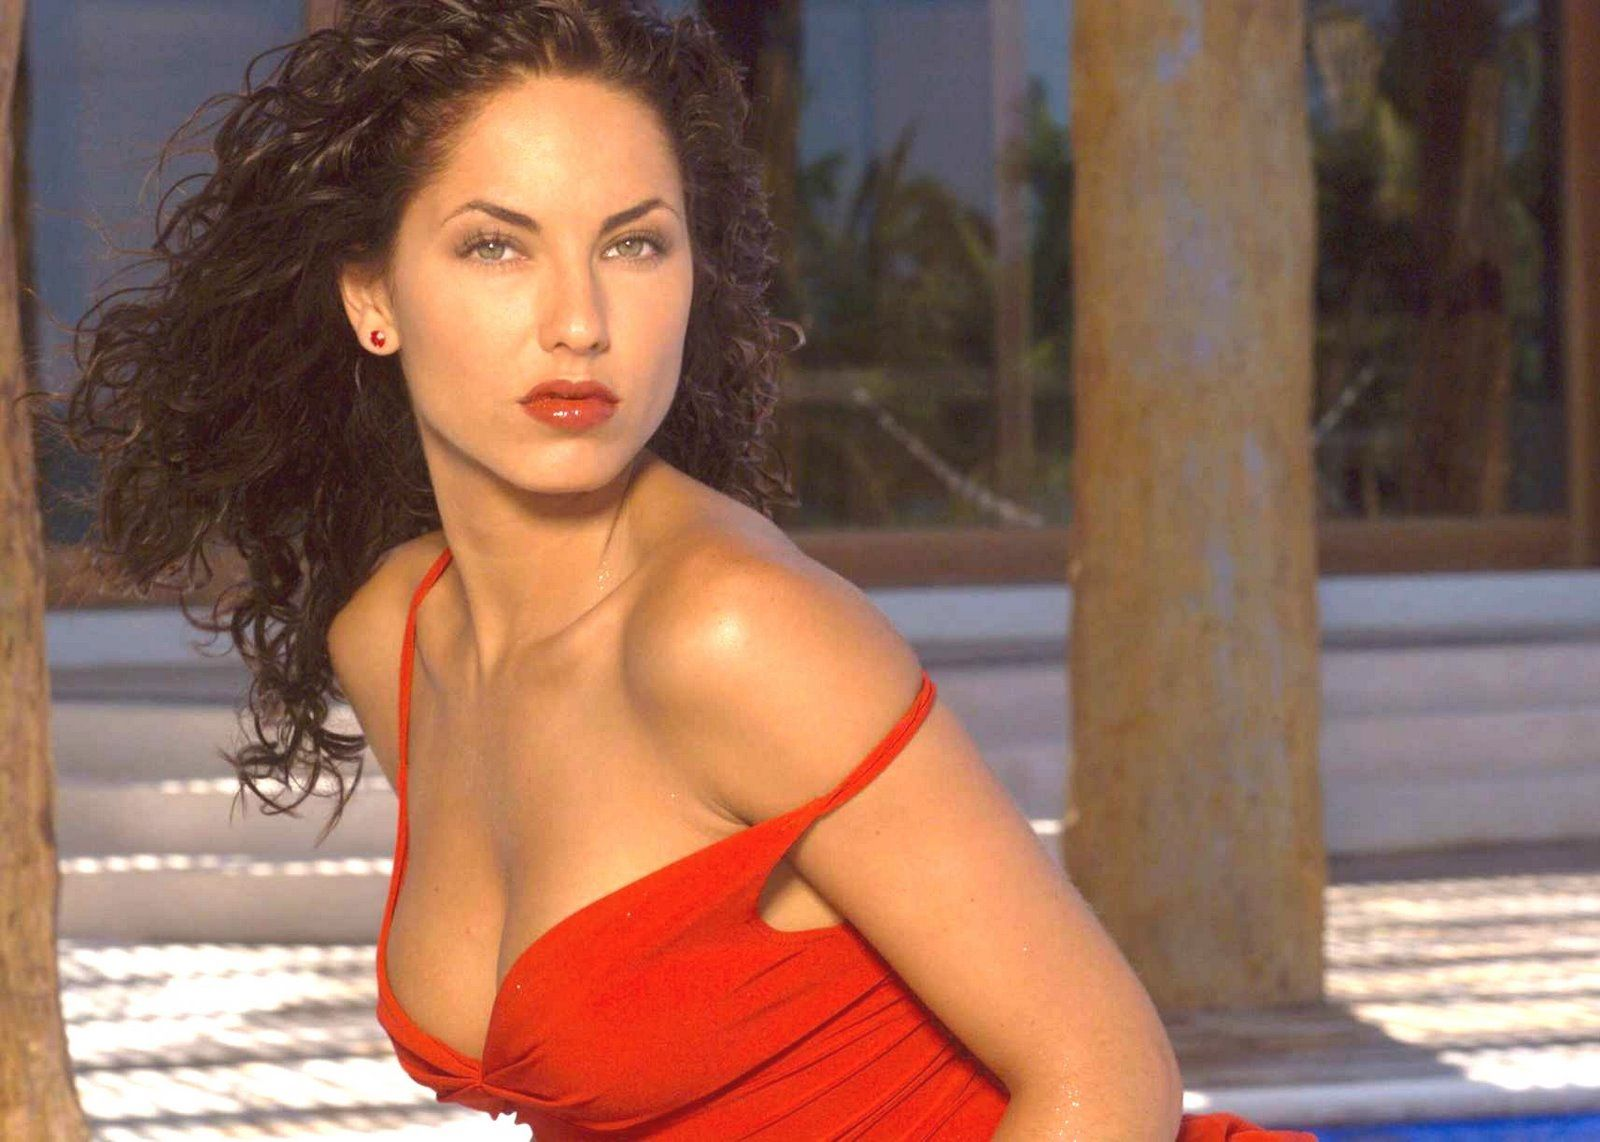 Barbara mori hot sexy